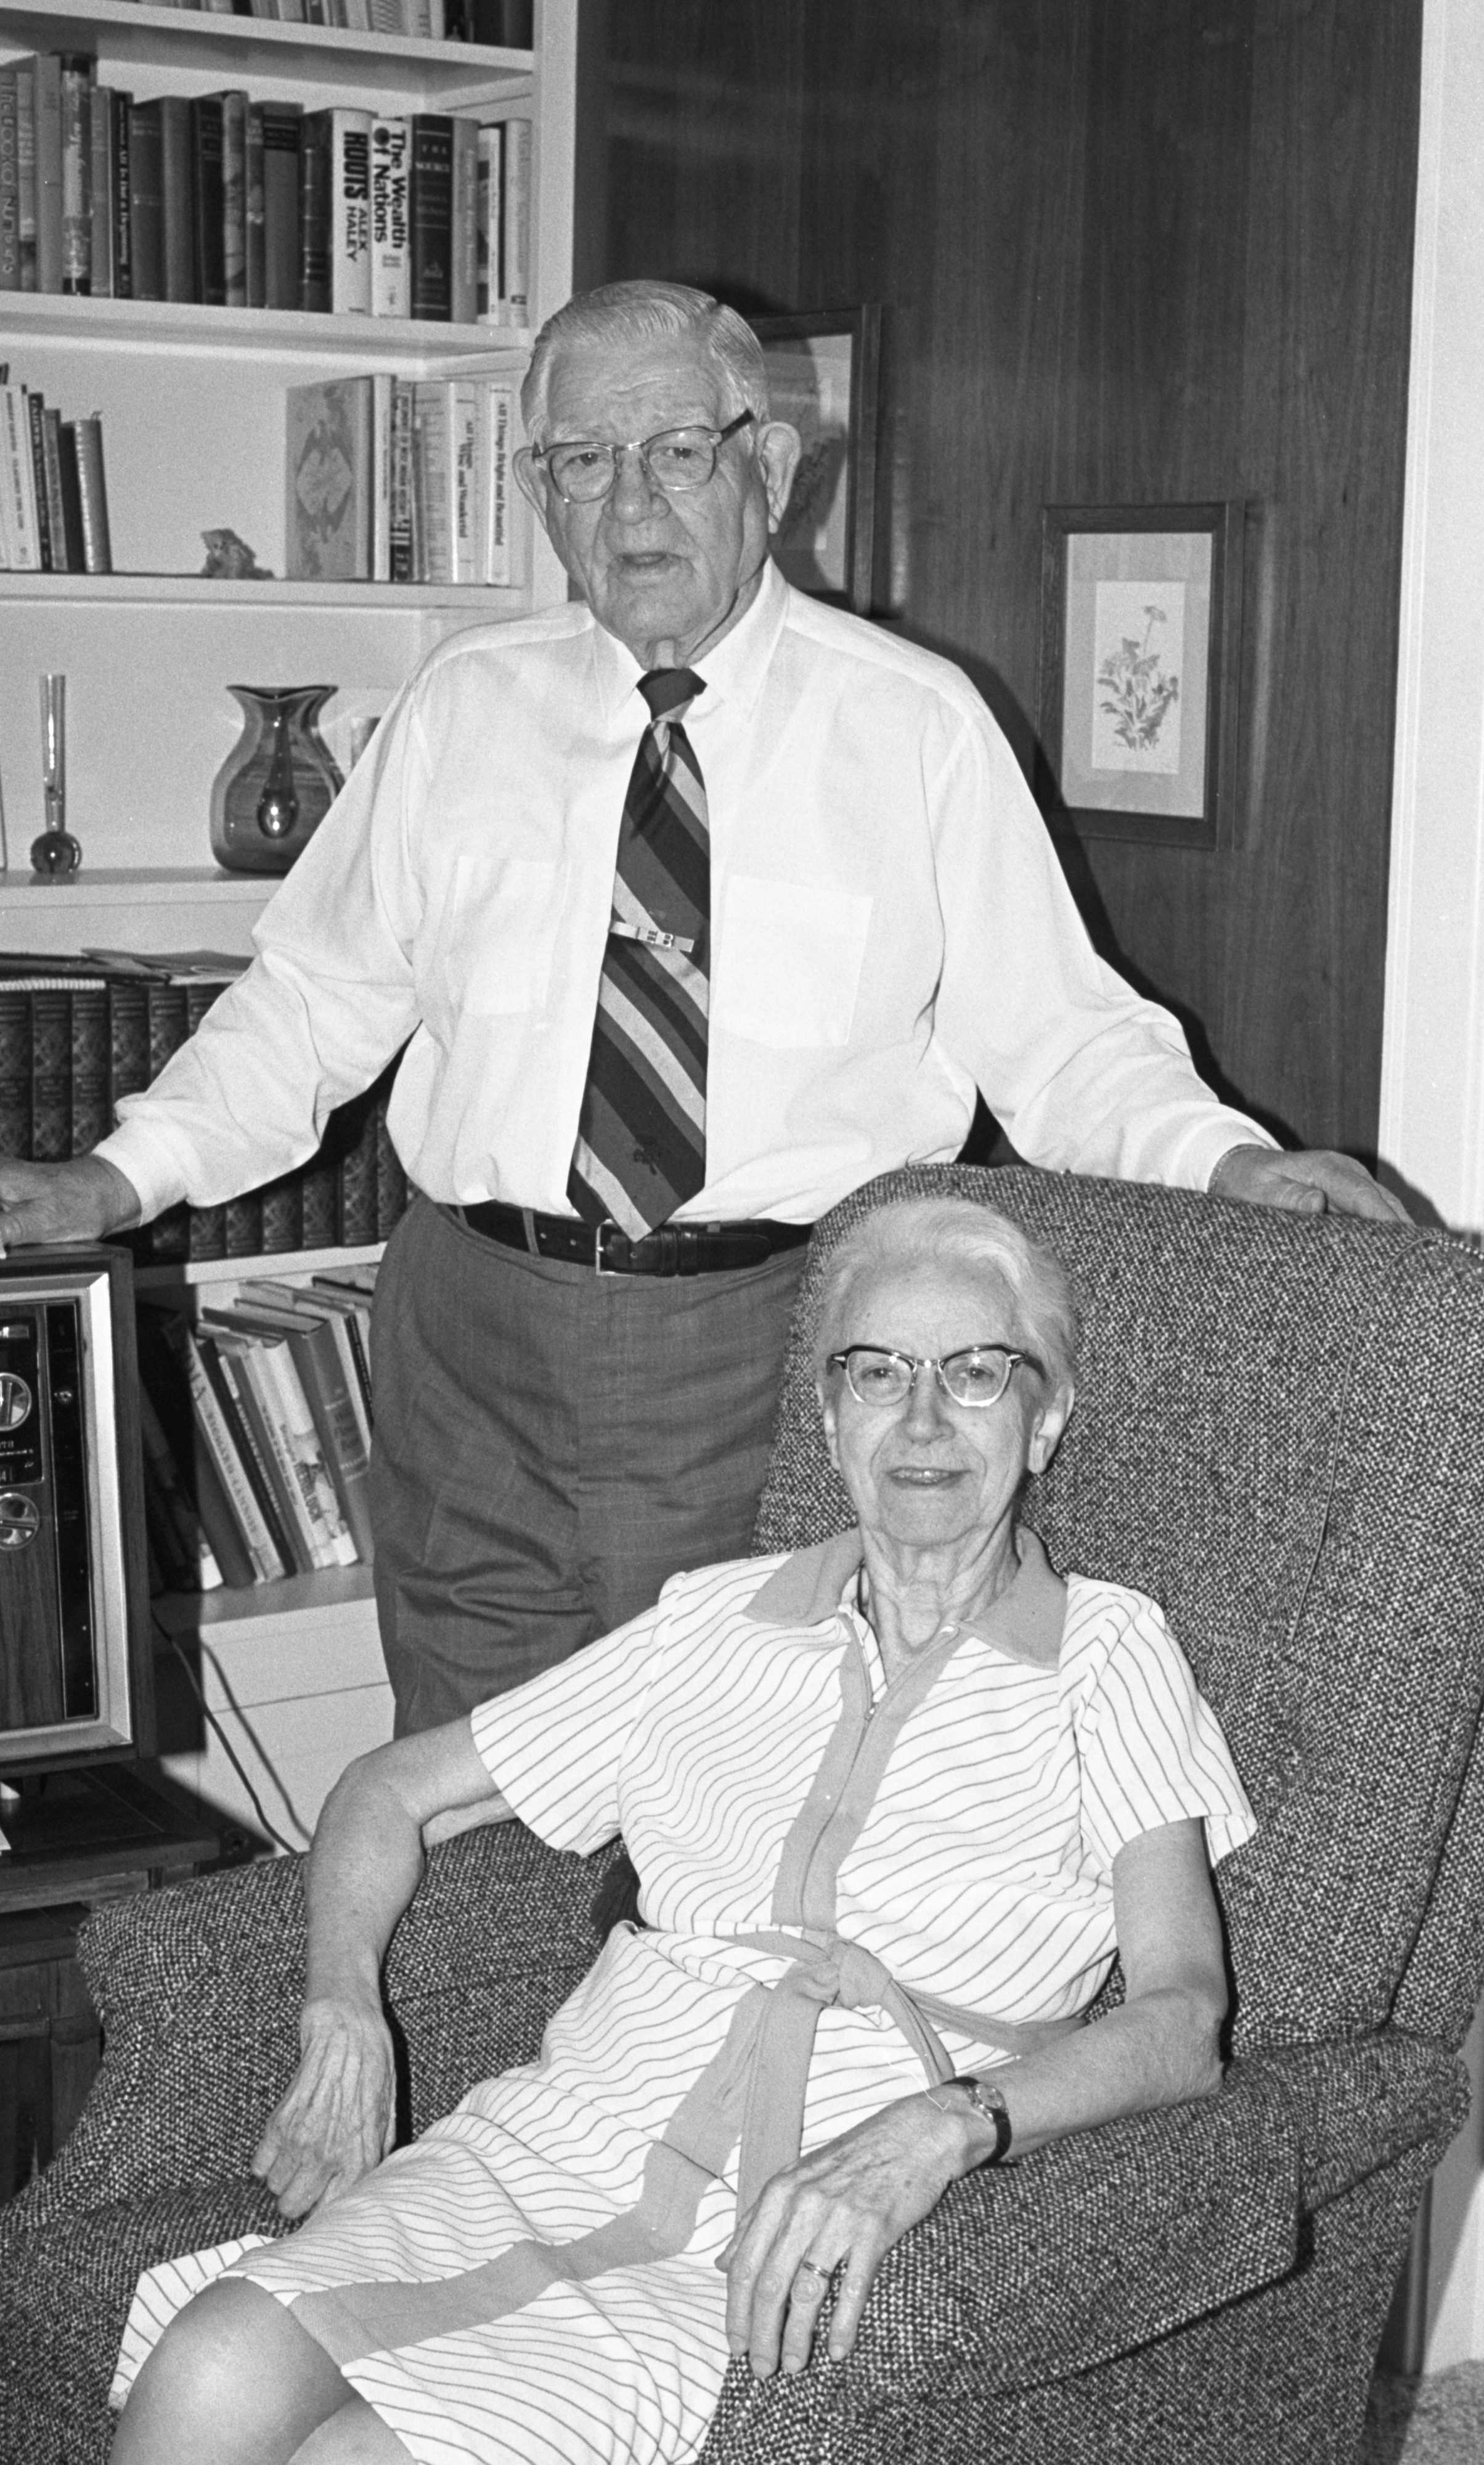 Earnest Boyce, Retired Civil Engineer, & His Wife Elsie, June 1979 image